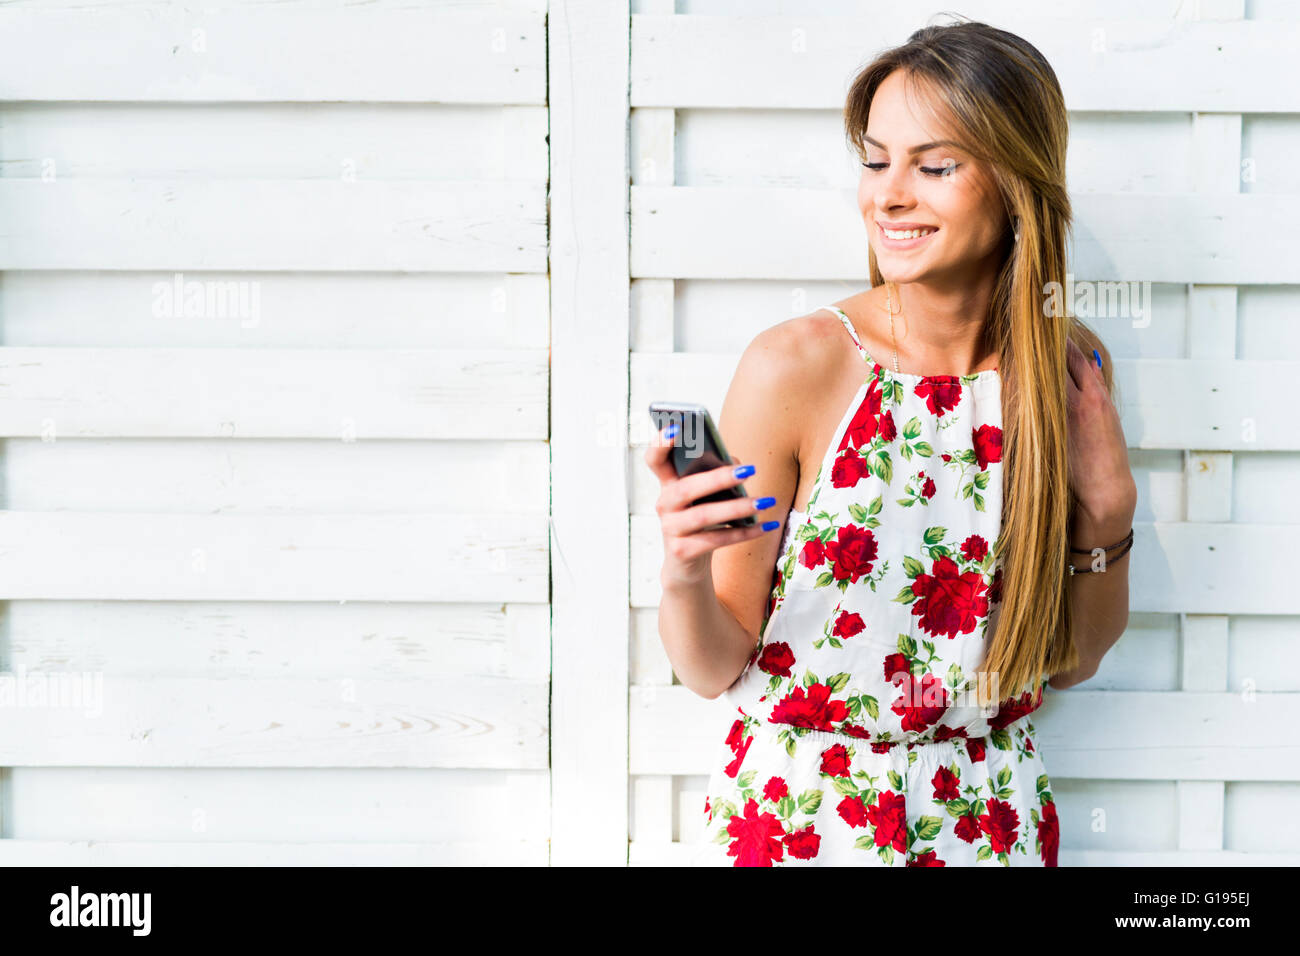 Beautiful young woman using phone while leaning against a white wall during a bright summer day Stock Photo